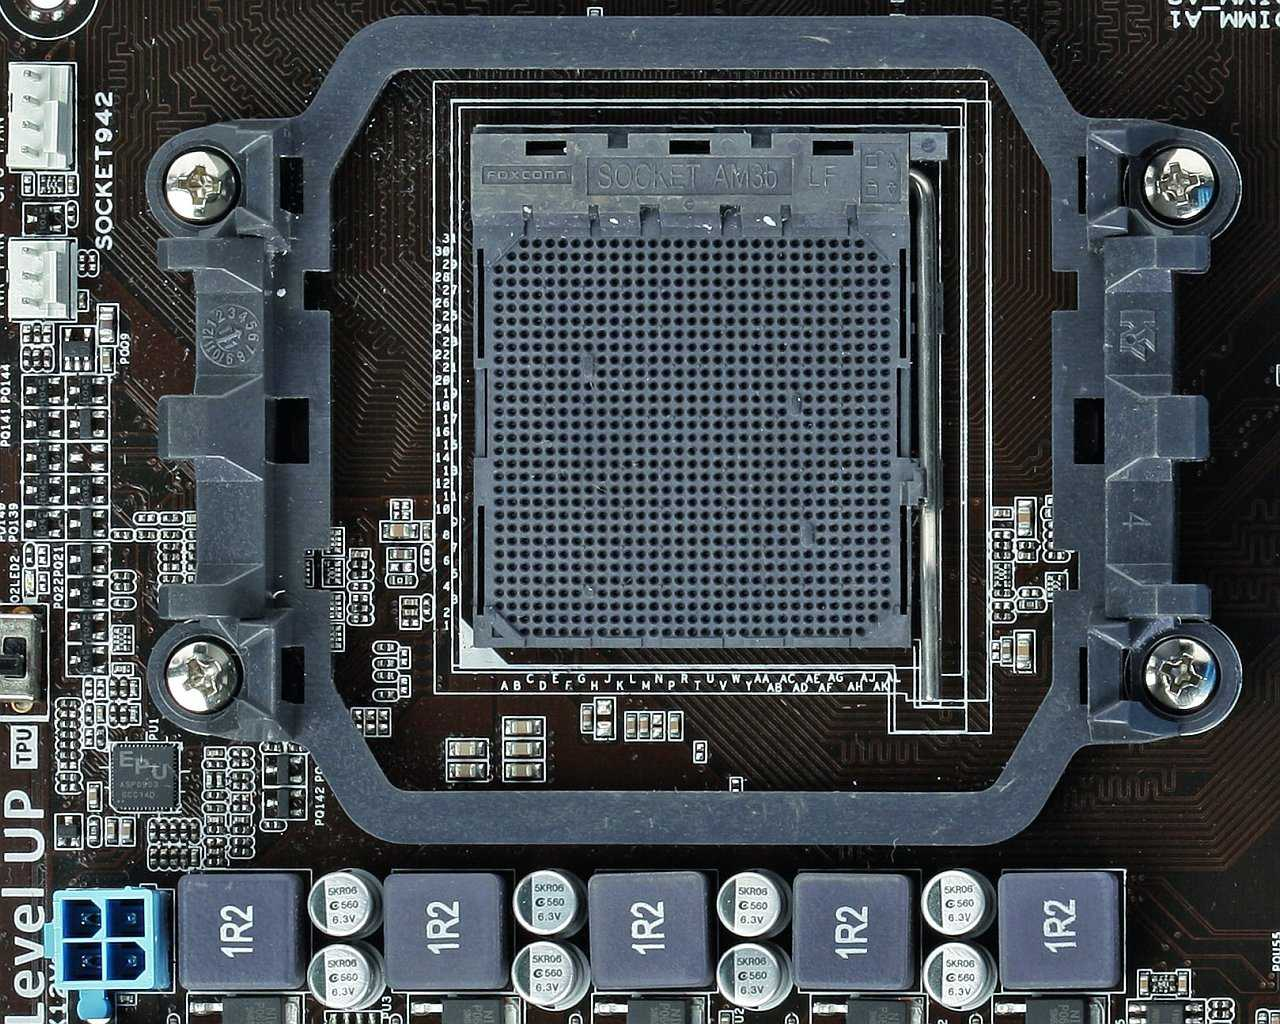 AMD Socket AM3+